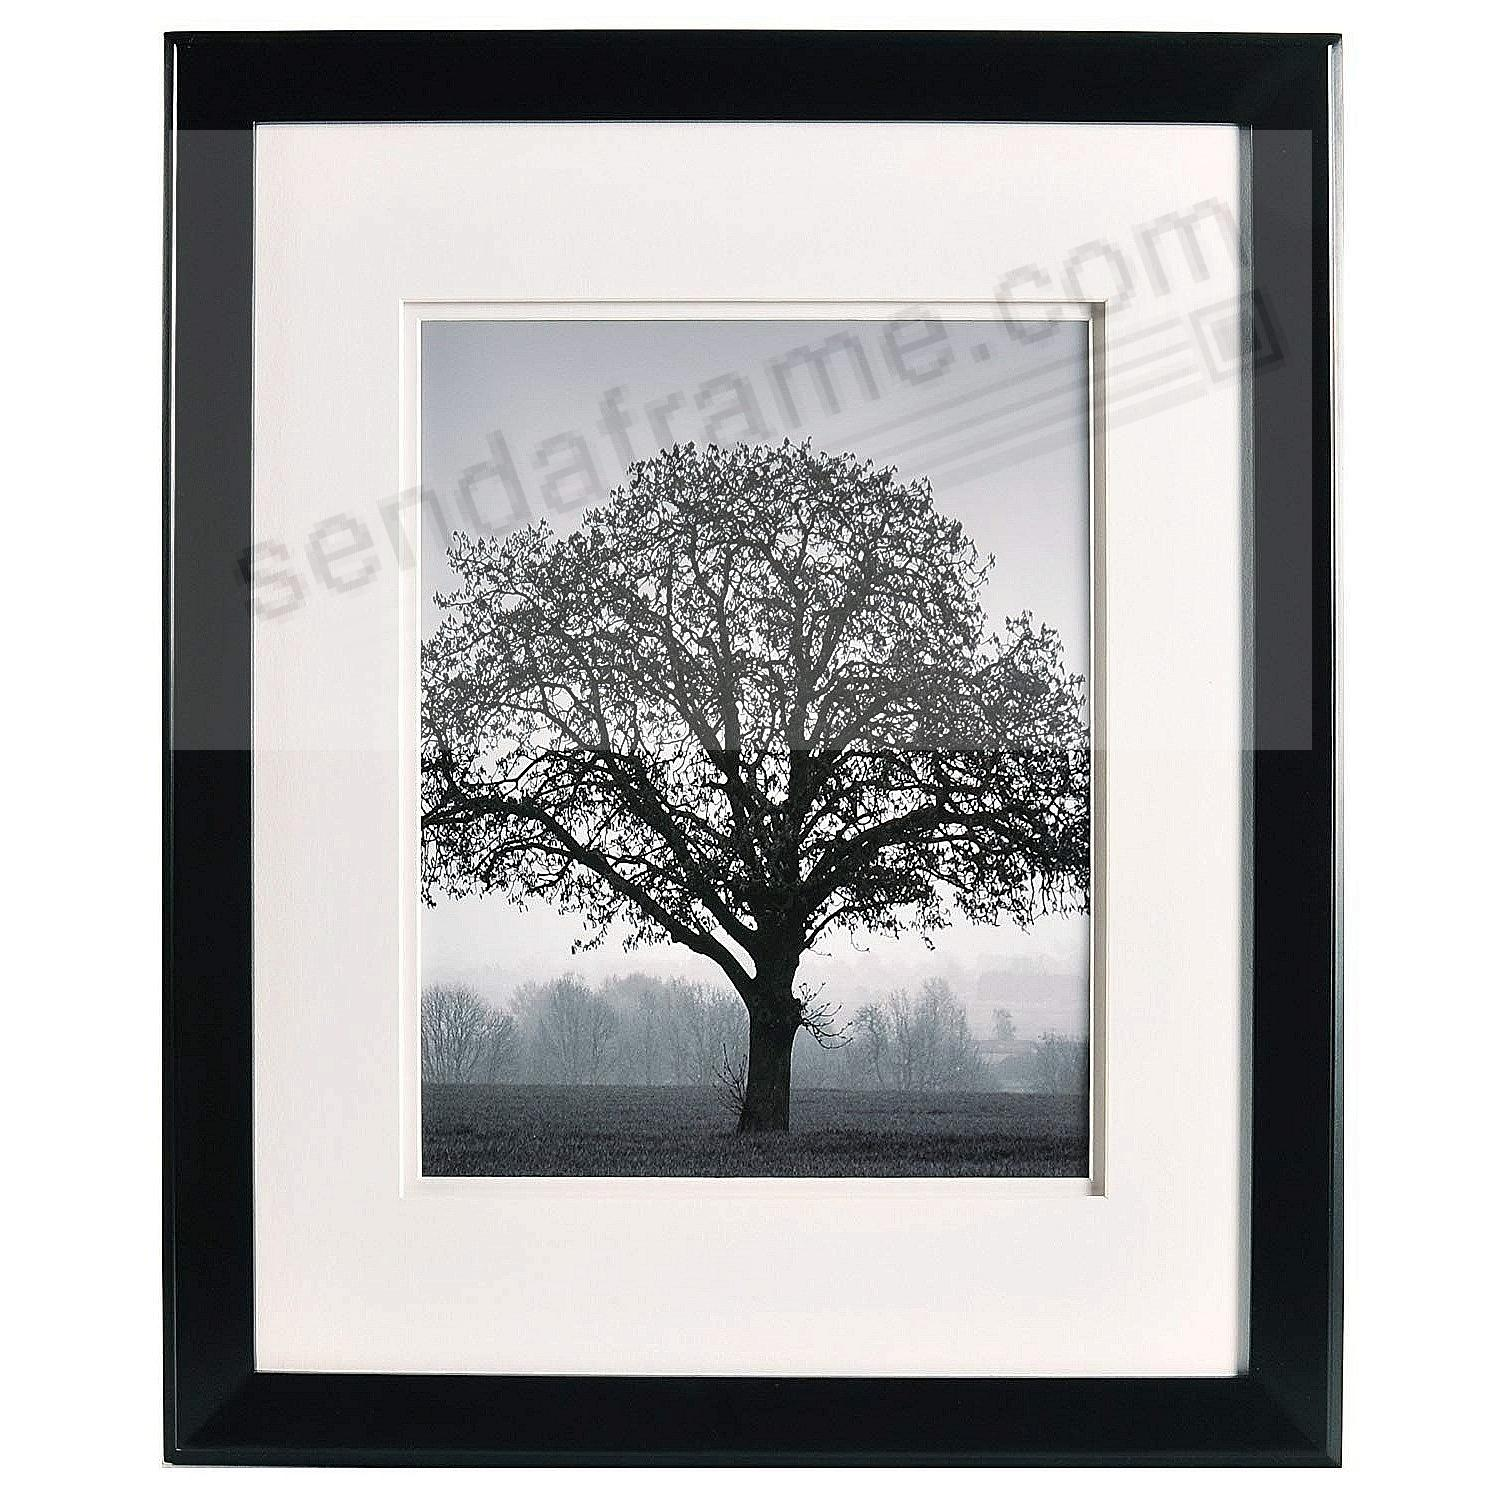 Chelsea Dbl Matted Black Wood Frame 16x2011x14 From Artcare By